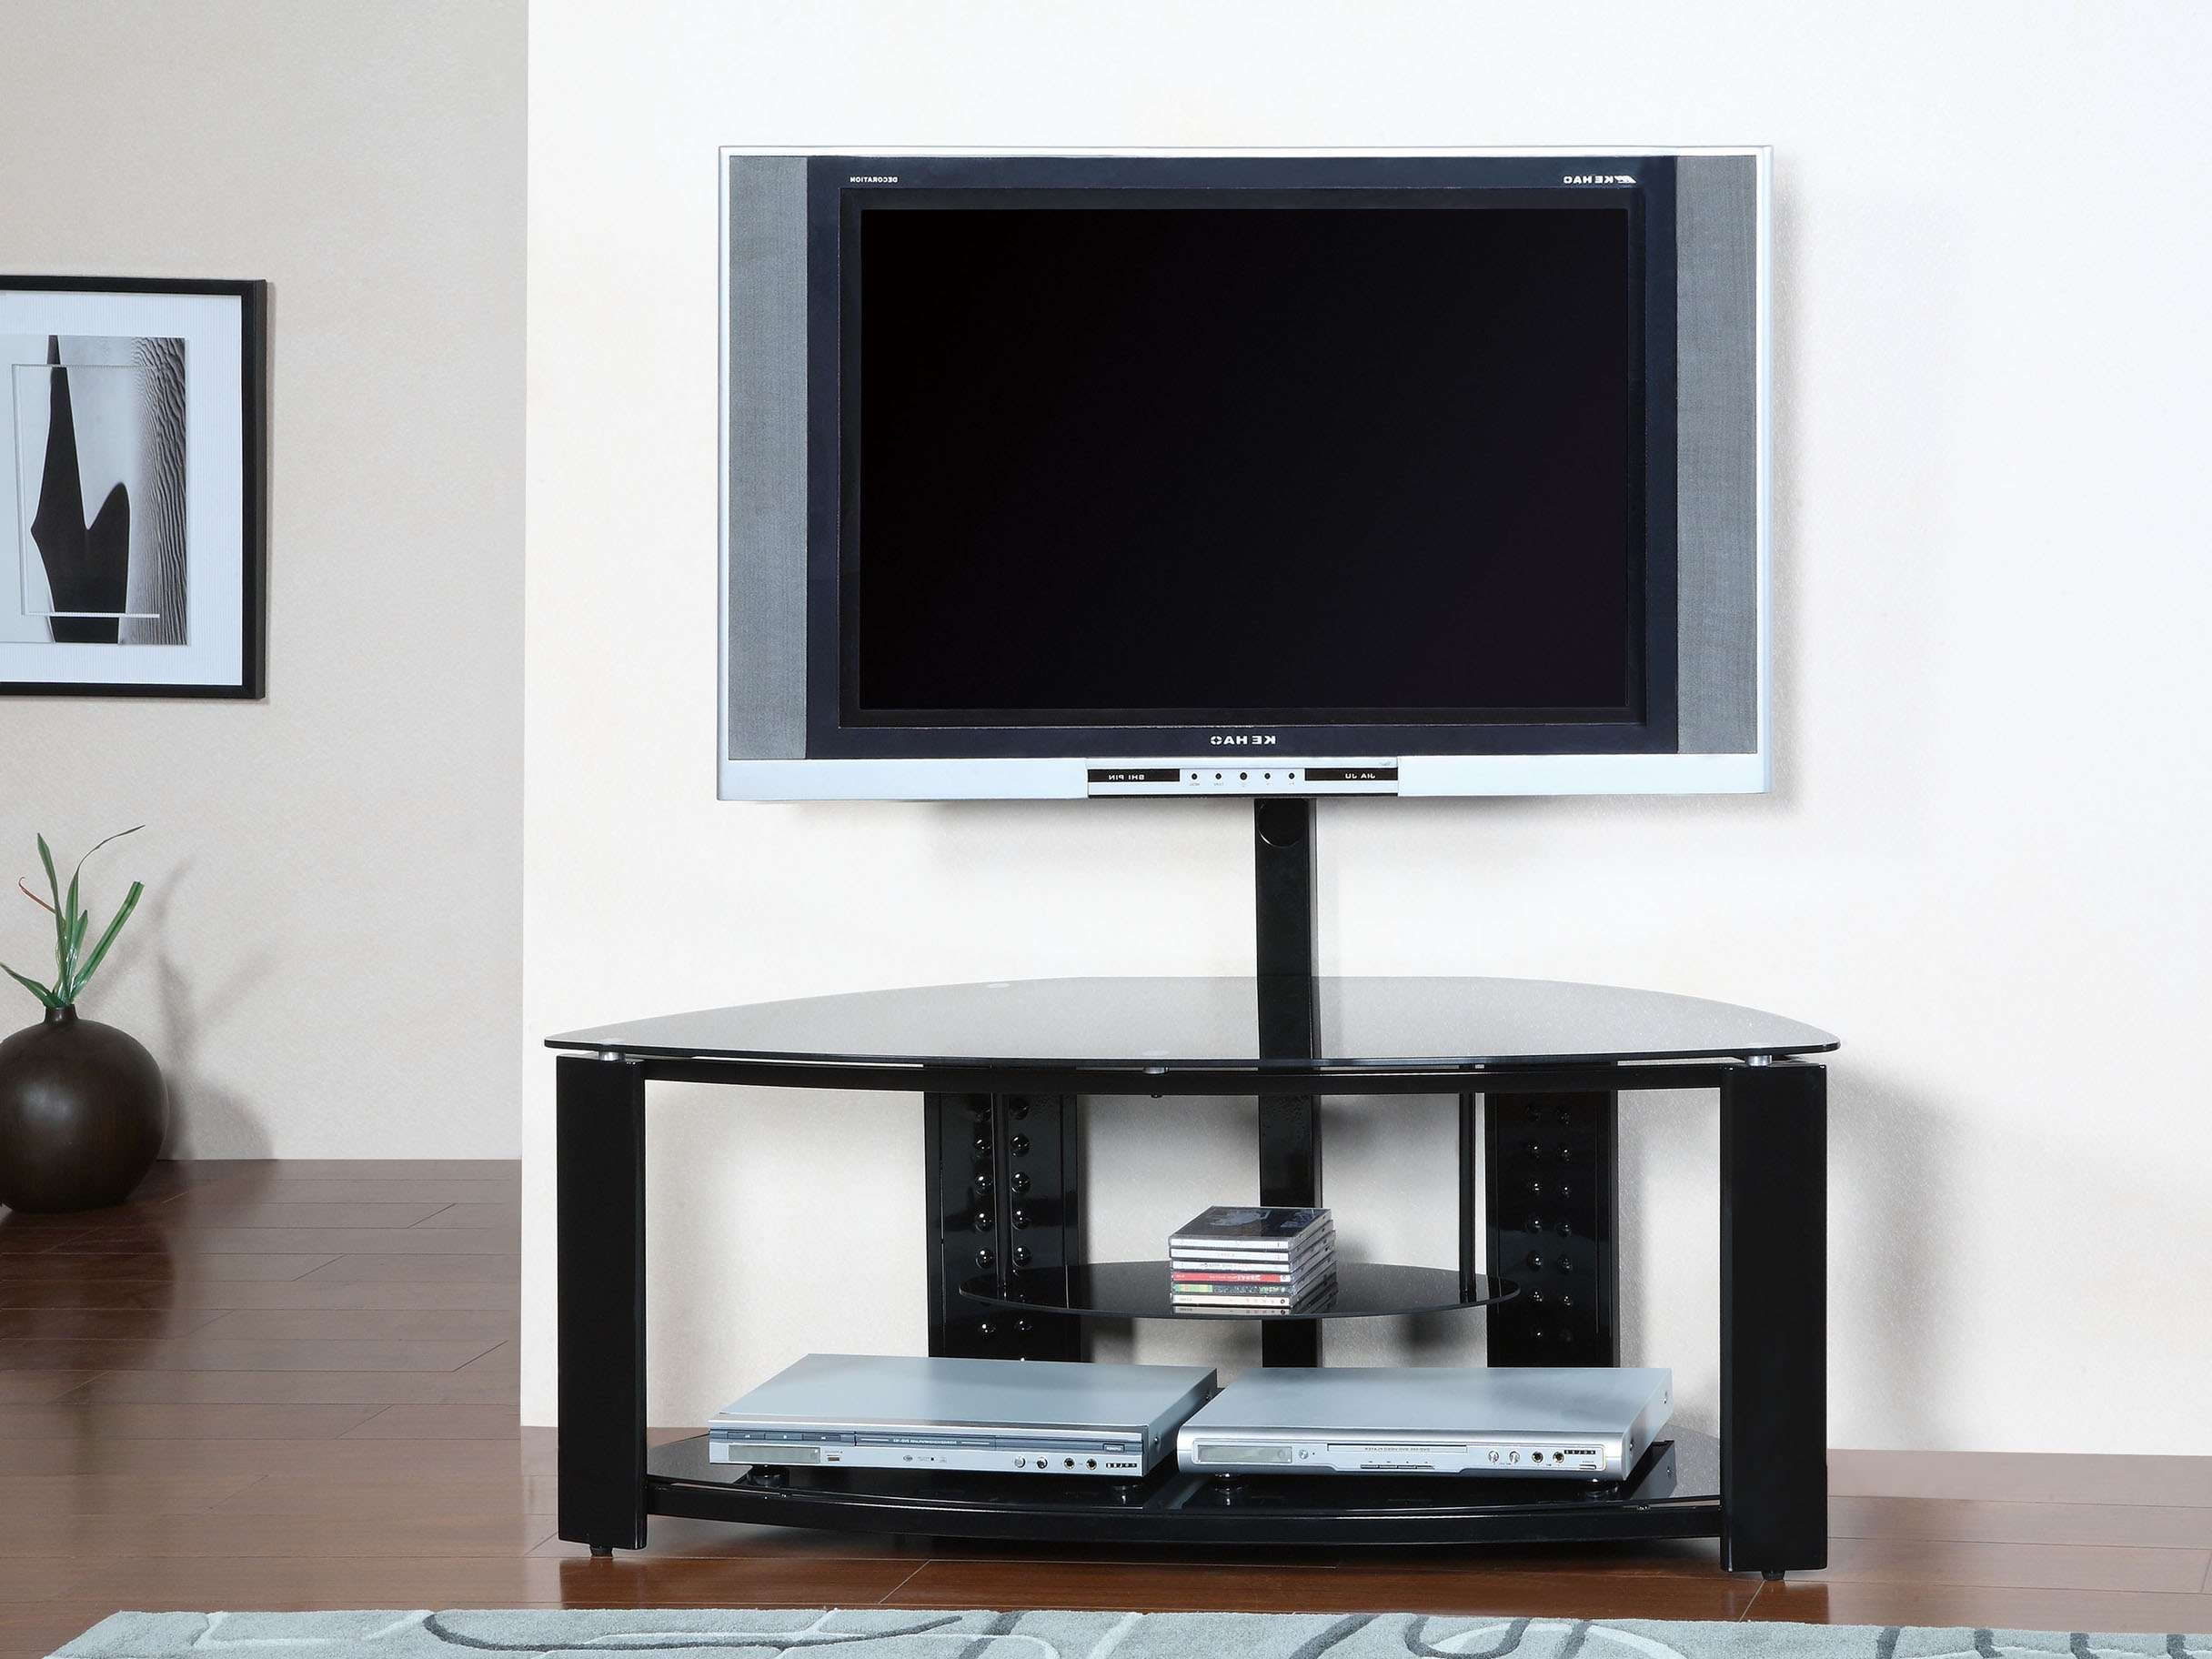 Modern Open Shelf Media Cabinet With Mounted Flat Screen Of Tall Within Open Shelf Tv Stands (View 2 of 15)